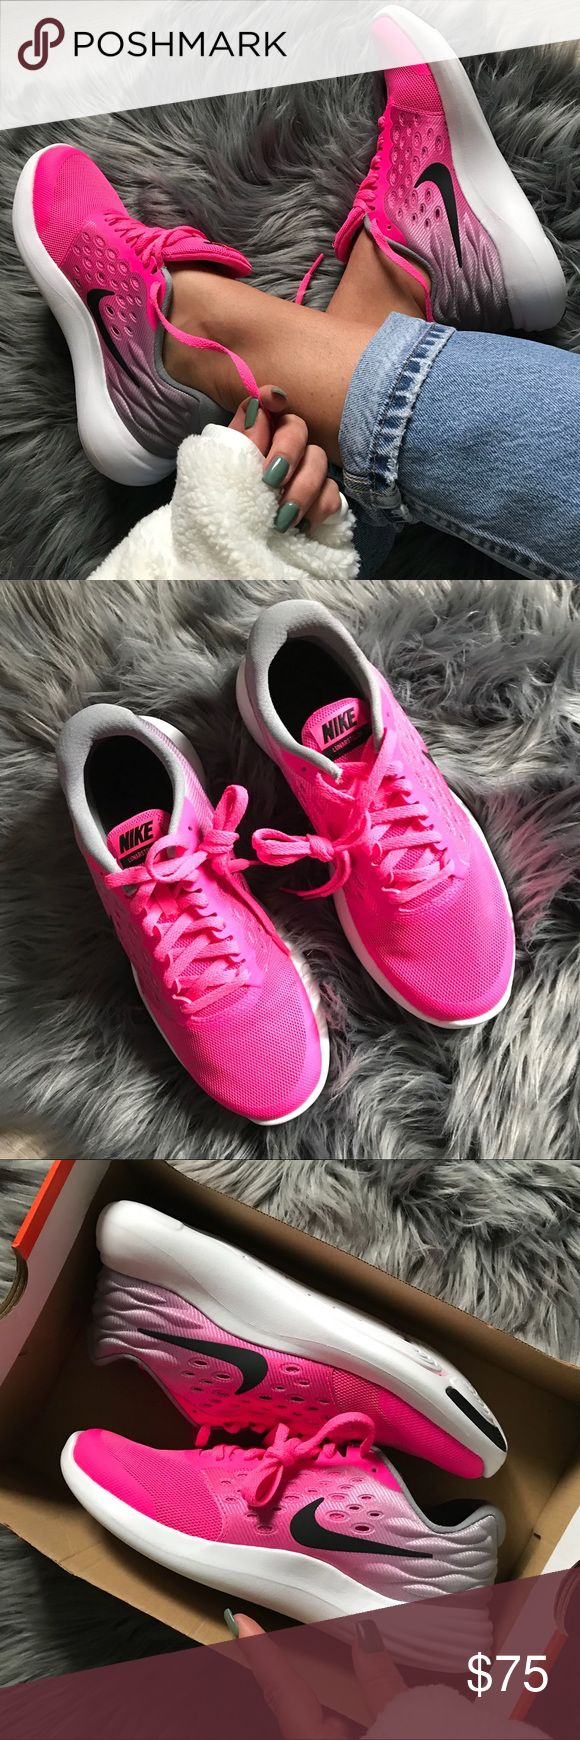 NWB 💕 NIKE LUNARSTELOS • PINK BLAST BRAND NEW, NIKE FREE! Cute, cozy & comfy NIKE LAUNARSTELOS | GET READY TO GET STELLAR! 🌷 Original FULL BOX.   ORDER YOUR WOMANS SHOE SIZE 🌷 5 youth = 6.5 women 6 youth = 7.5 women  ALL SIZES LISTED ACCORDING TO NIKE SIZE CHART.   Ships same or next day. Smoke free home.   PRICED FIRM, offers will be considered through the offer button only. Bundle to save. 🌷  100% authentic & direct from NIKE Nike Shoes Athletic Shoes